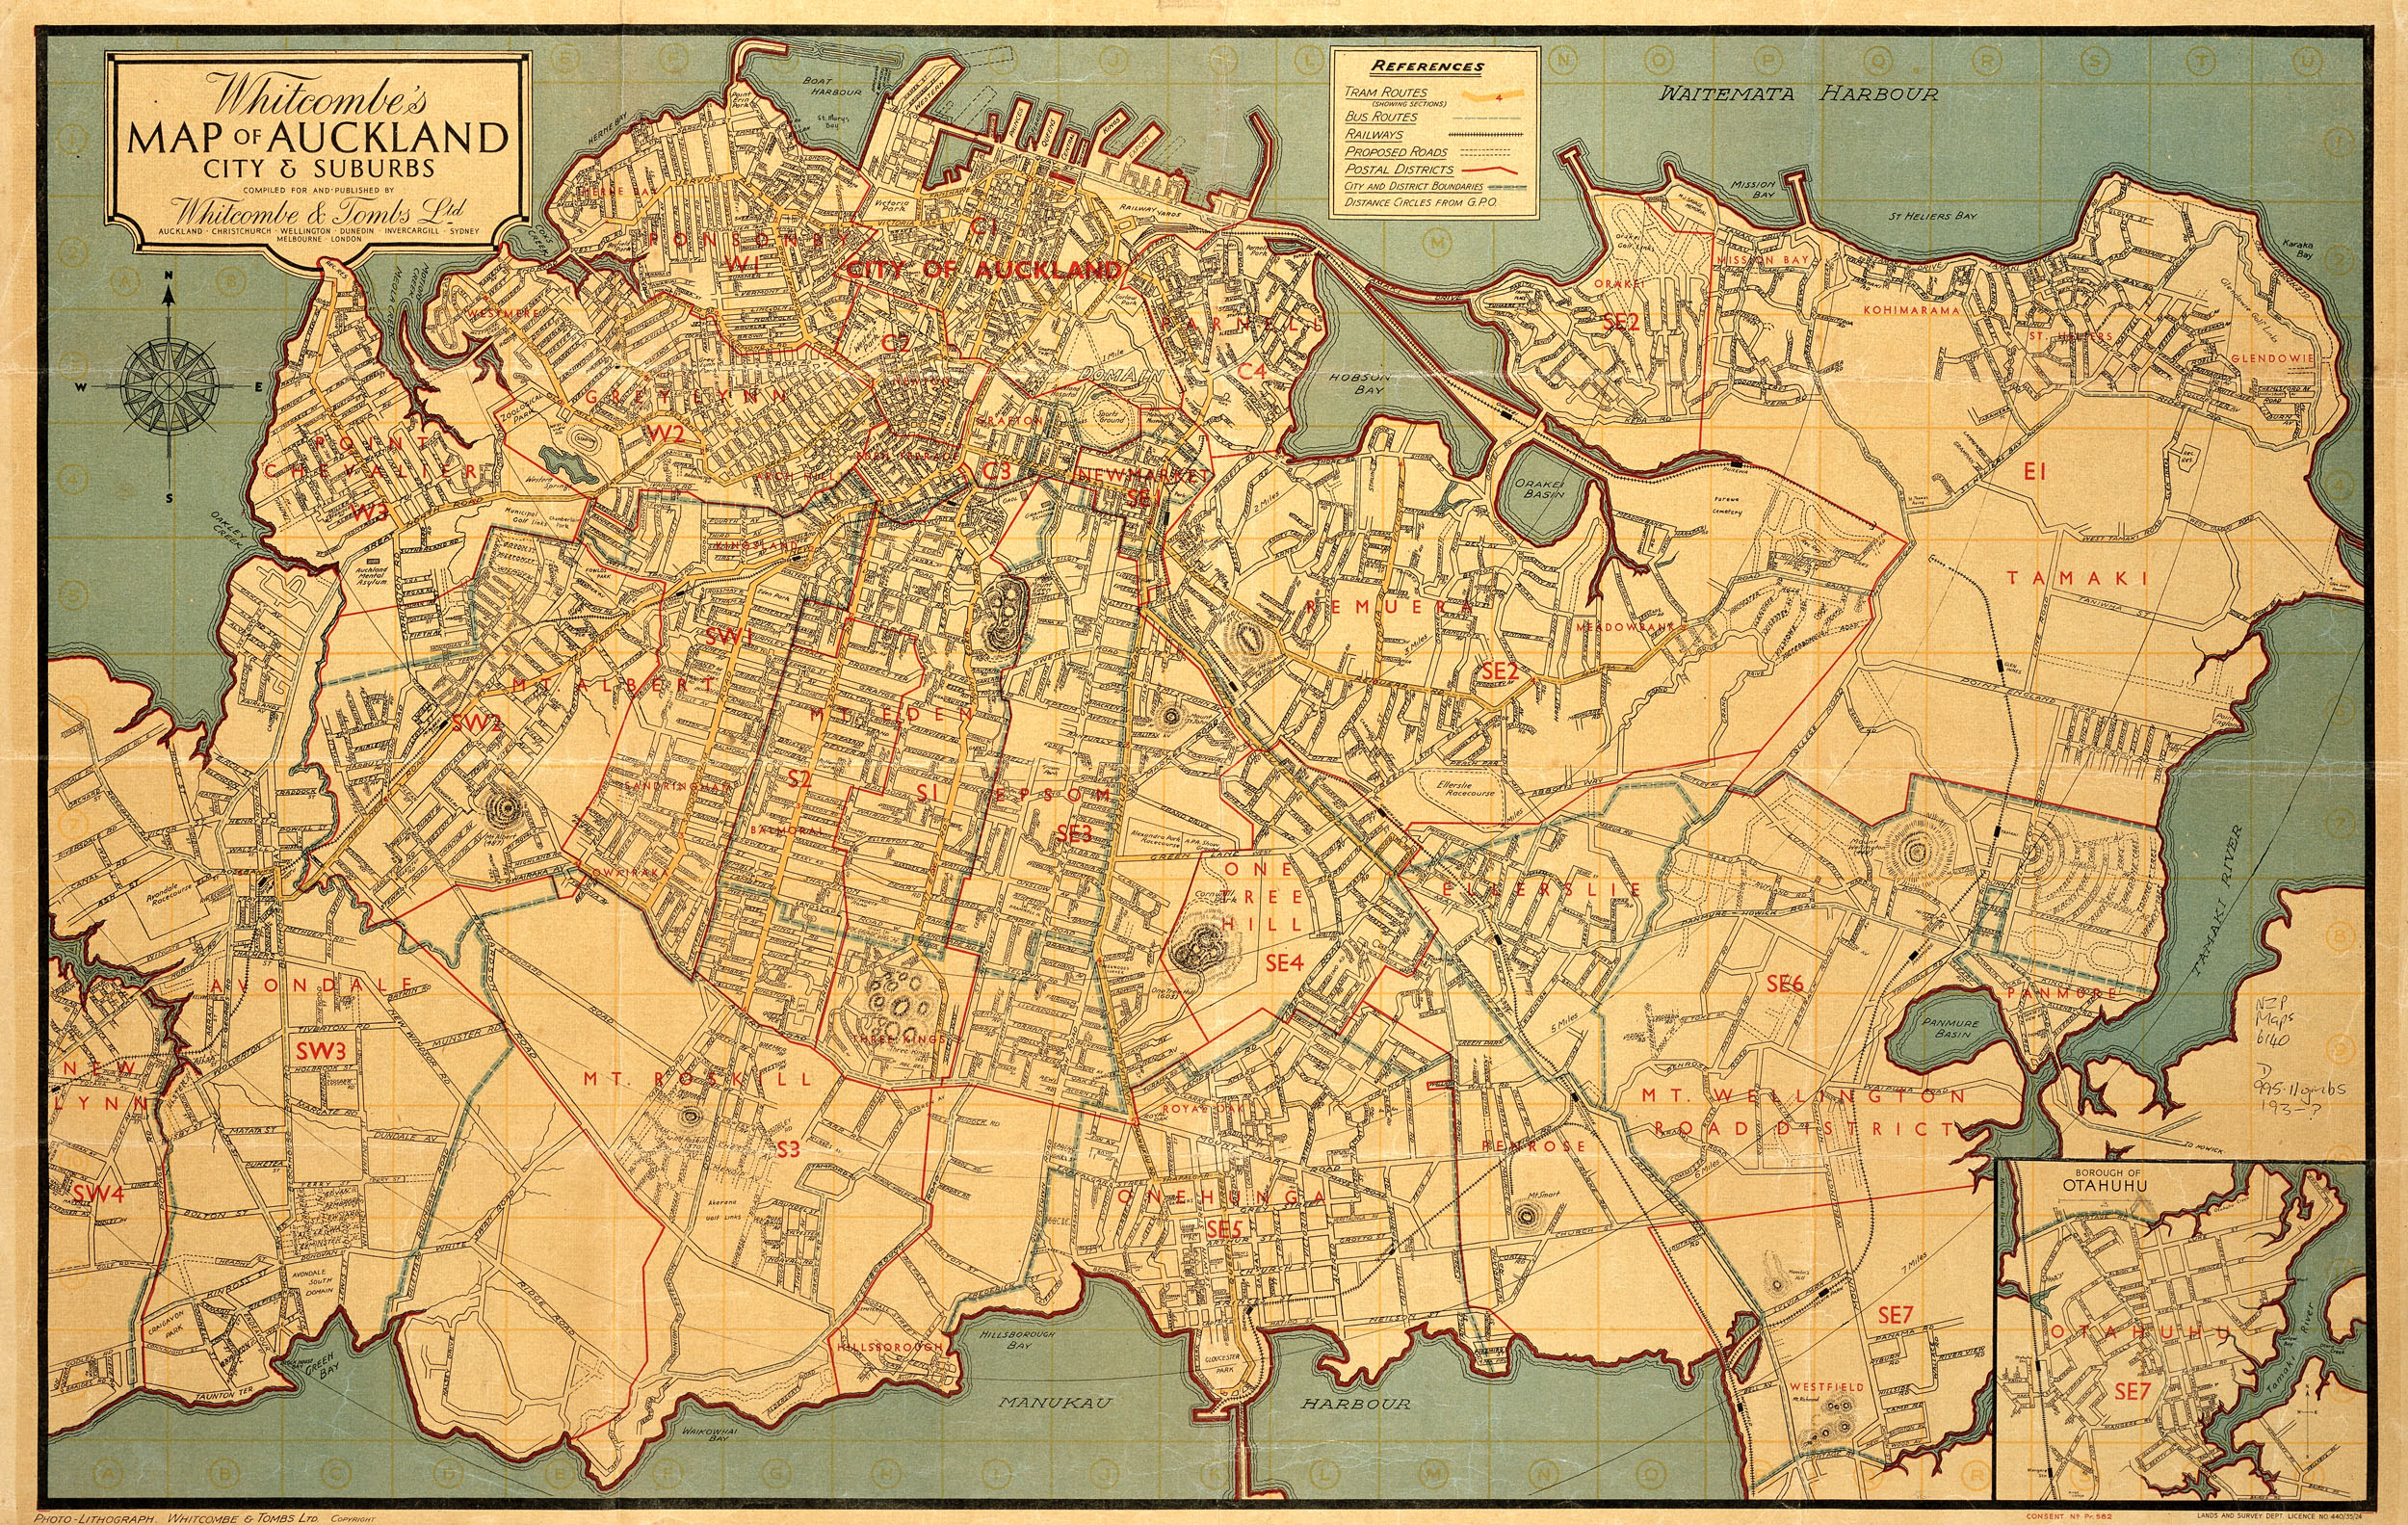 whitcombes map of auckland city and suburbs